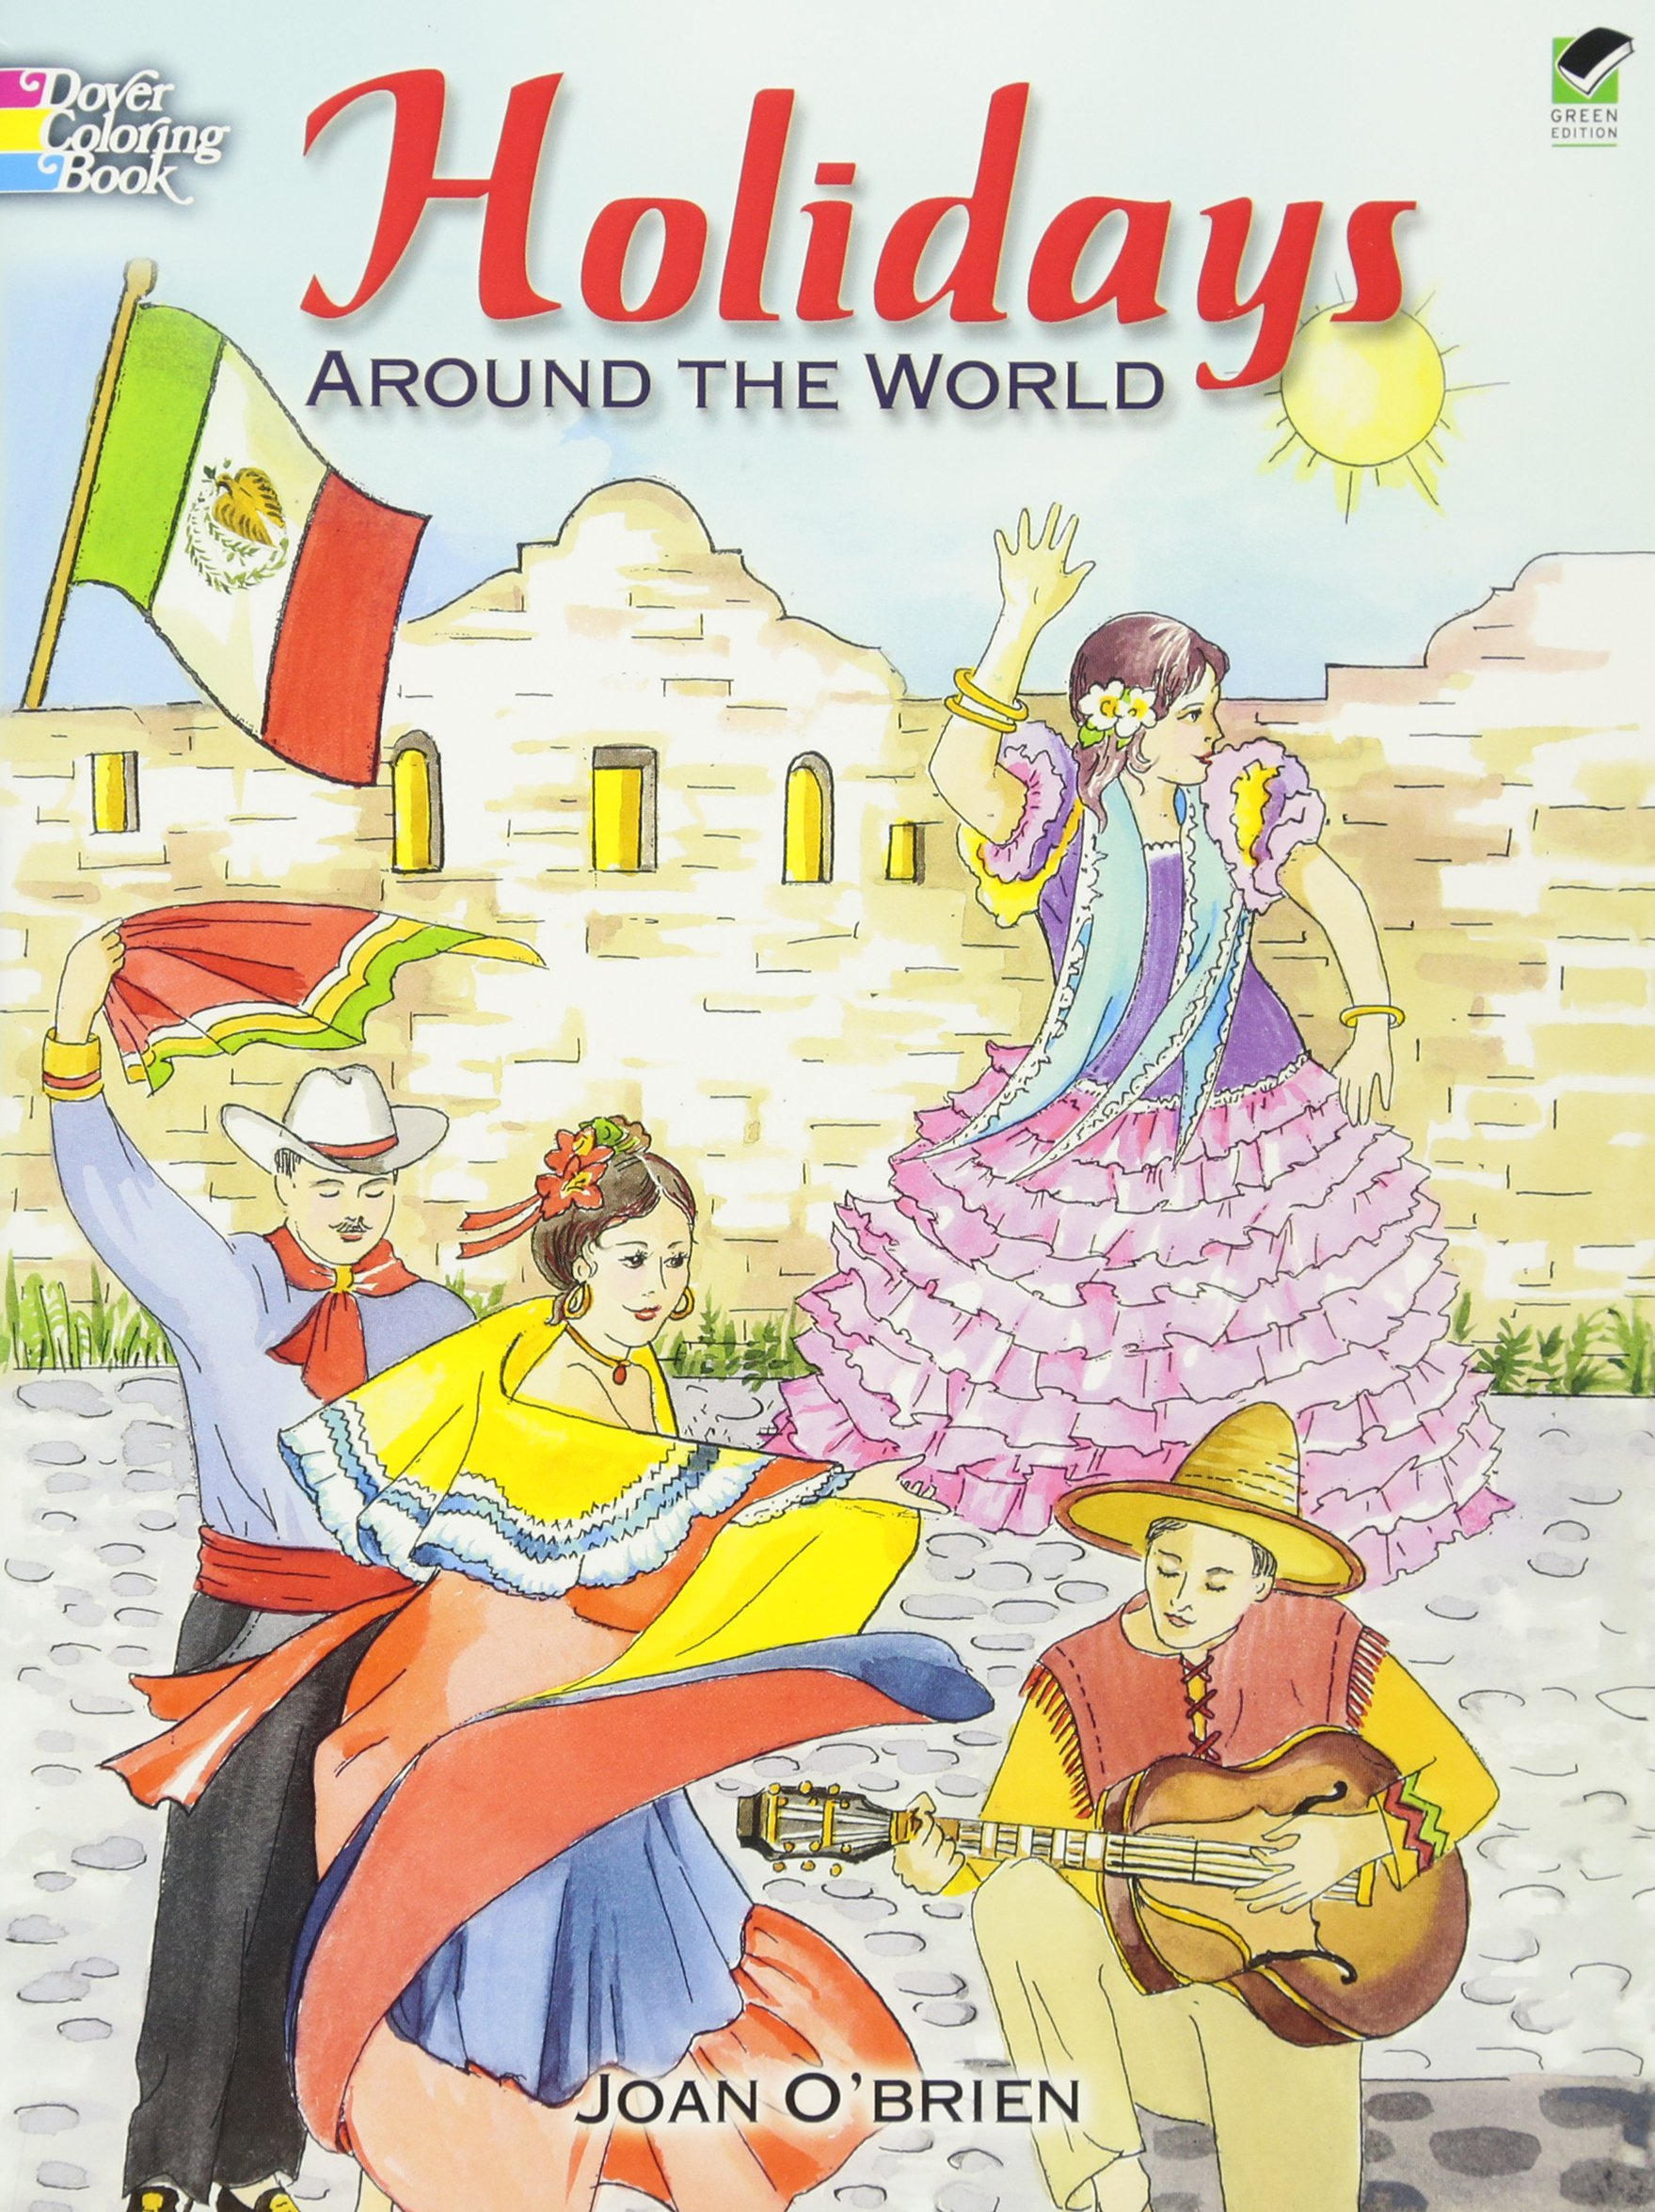 Holidays around the world dover holiday coloring book joan obrien coloring books 9780486451619 amazon com books